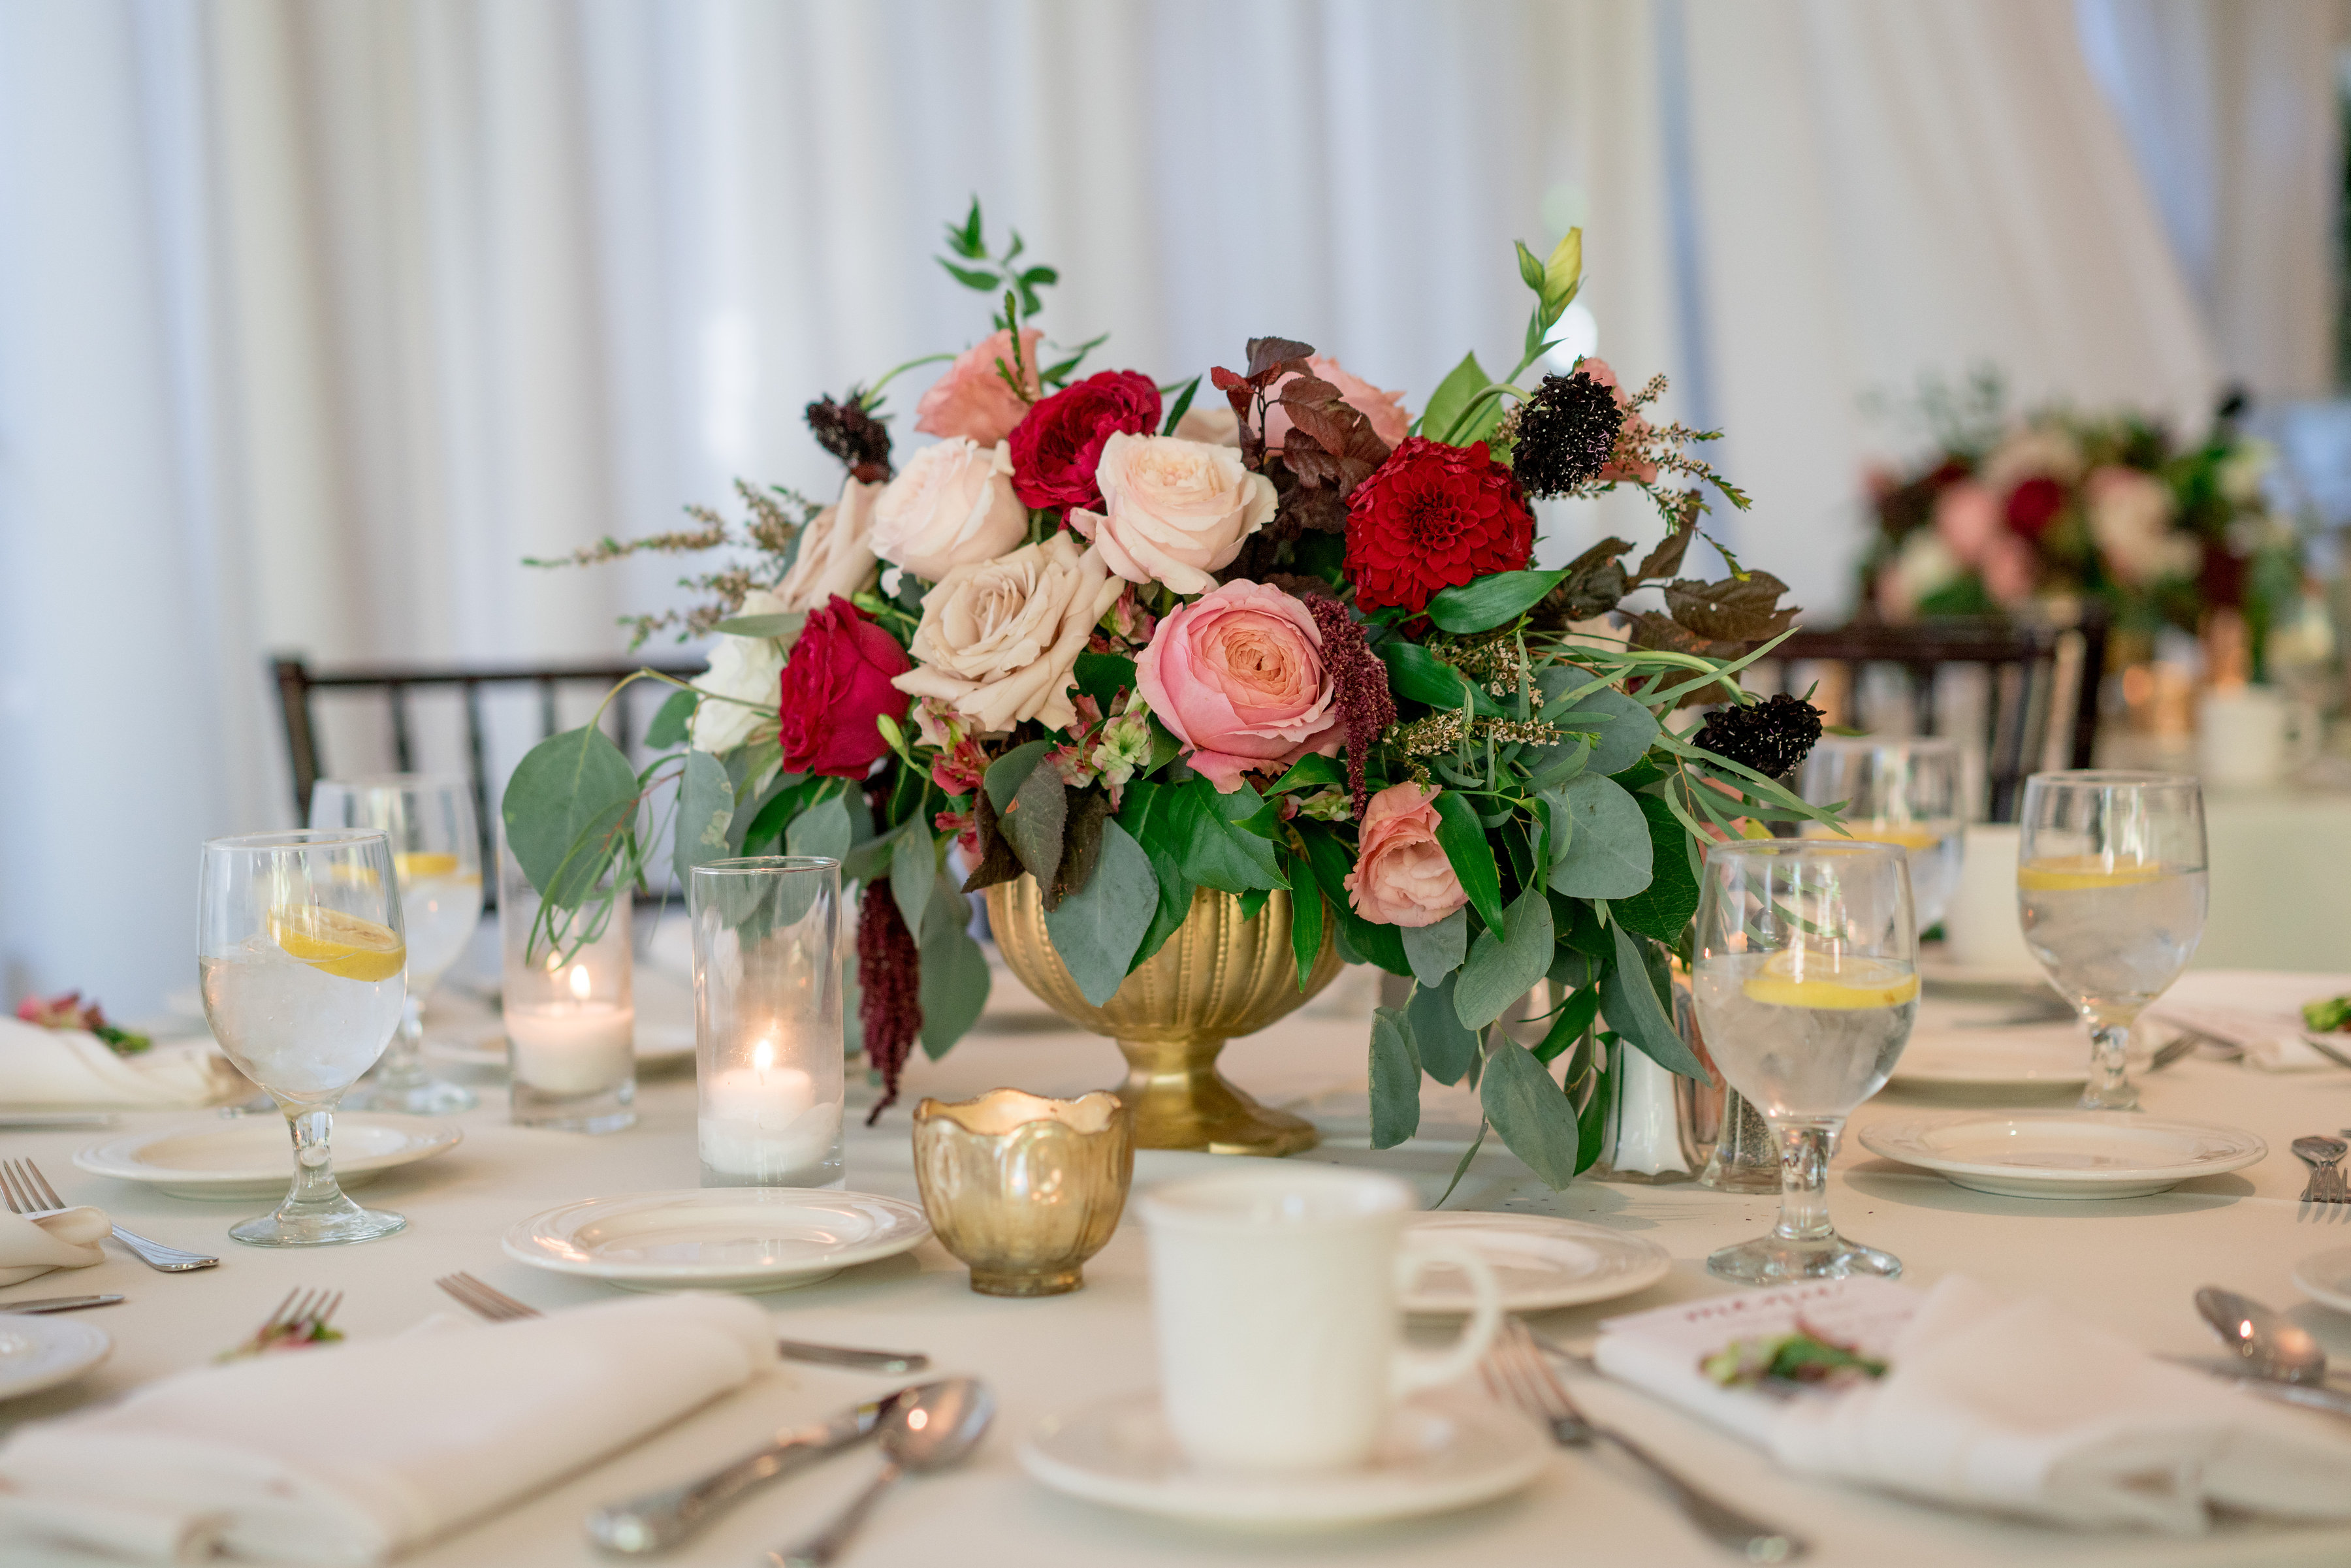 Short centerpieces in gold footed vase